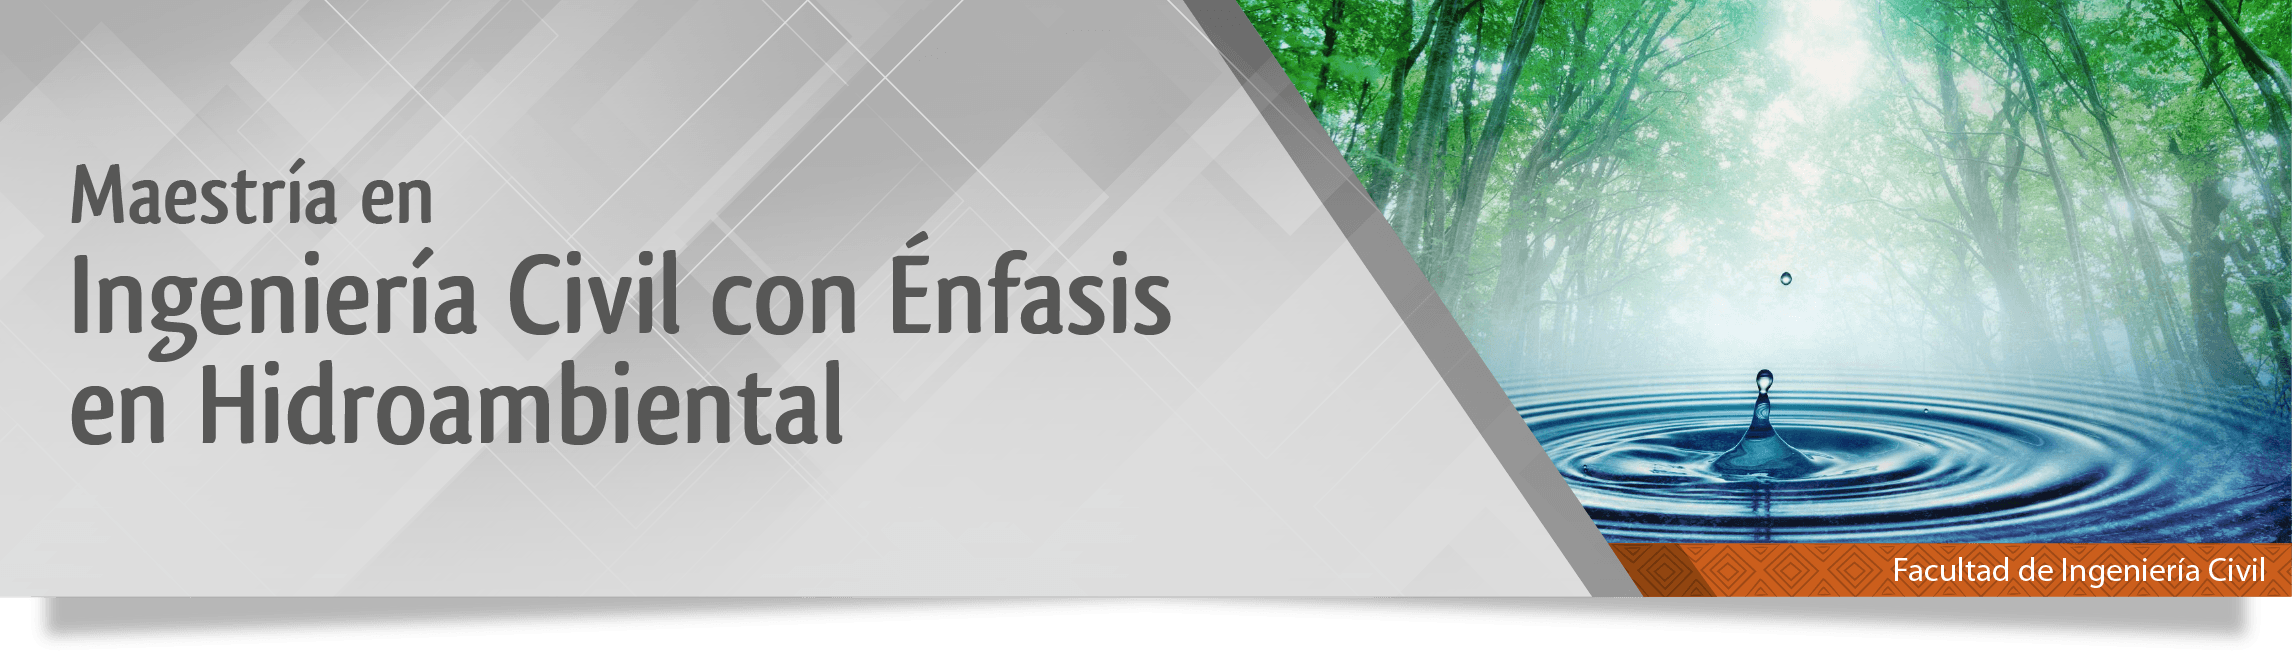 Ingenieria Civil con Enfasis en Hidroambiental